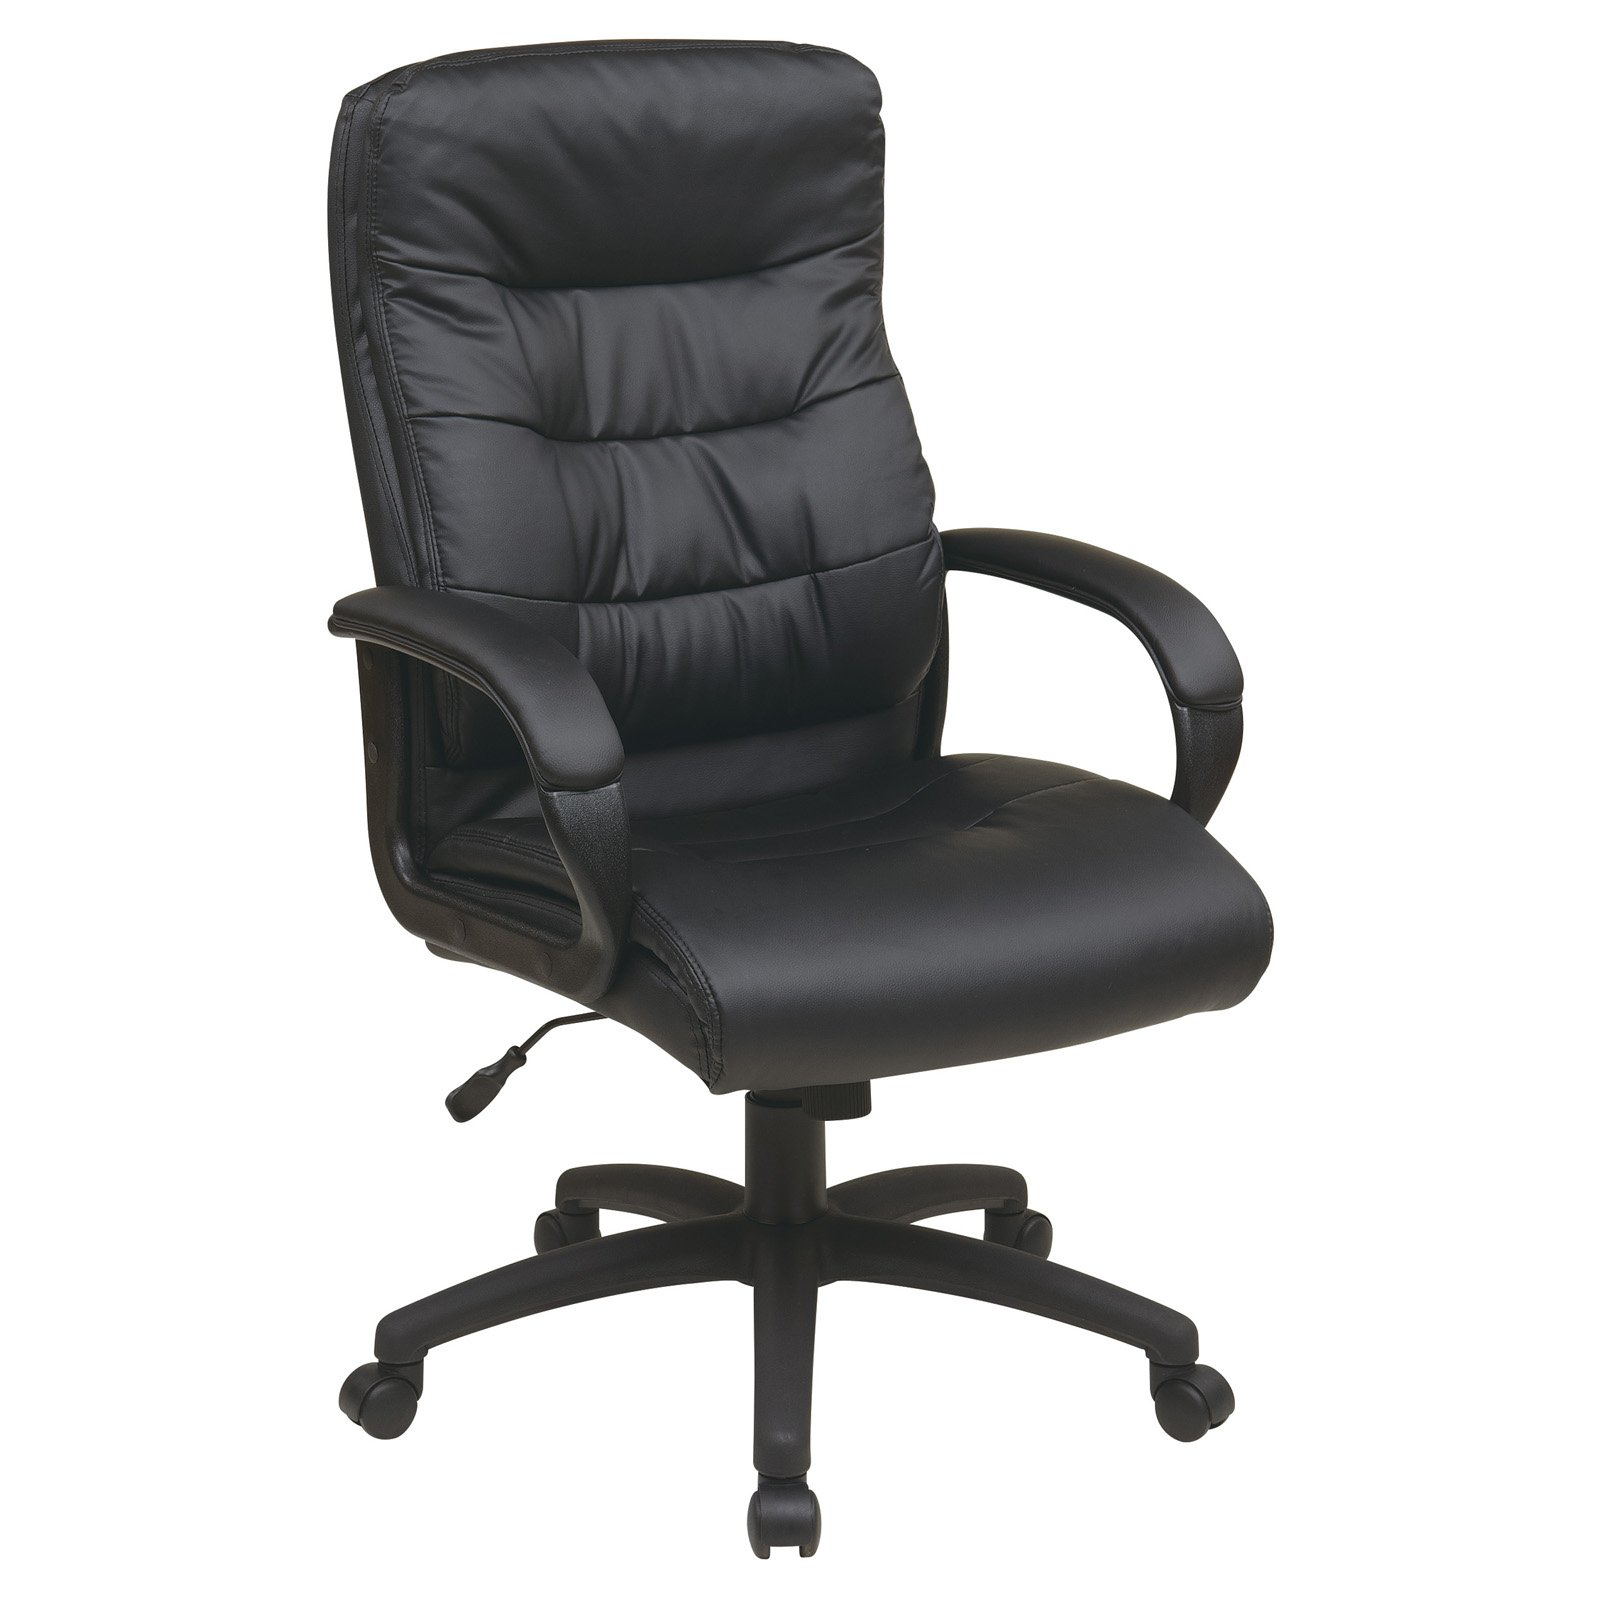 High-Back Faux-Leather Executive Office Chair with Padded Arms, Black